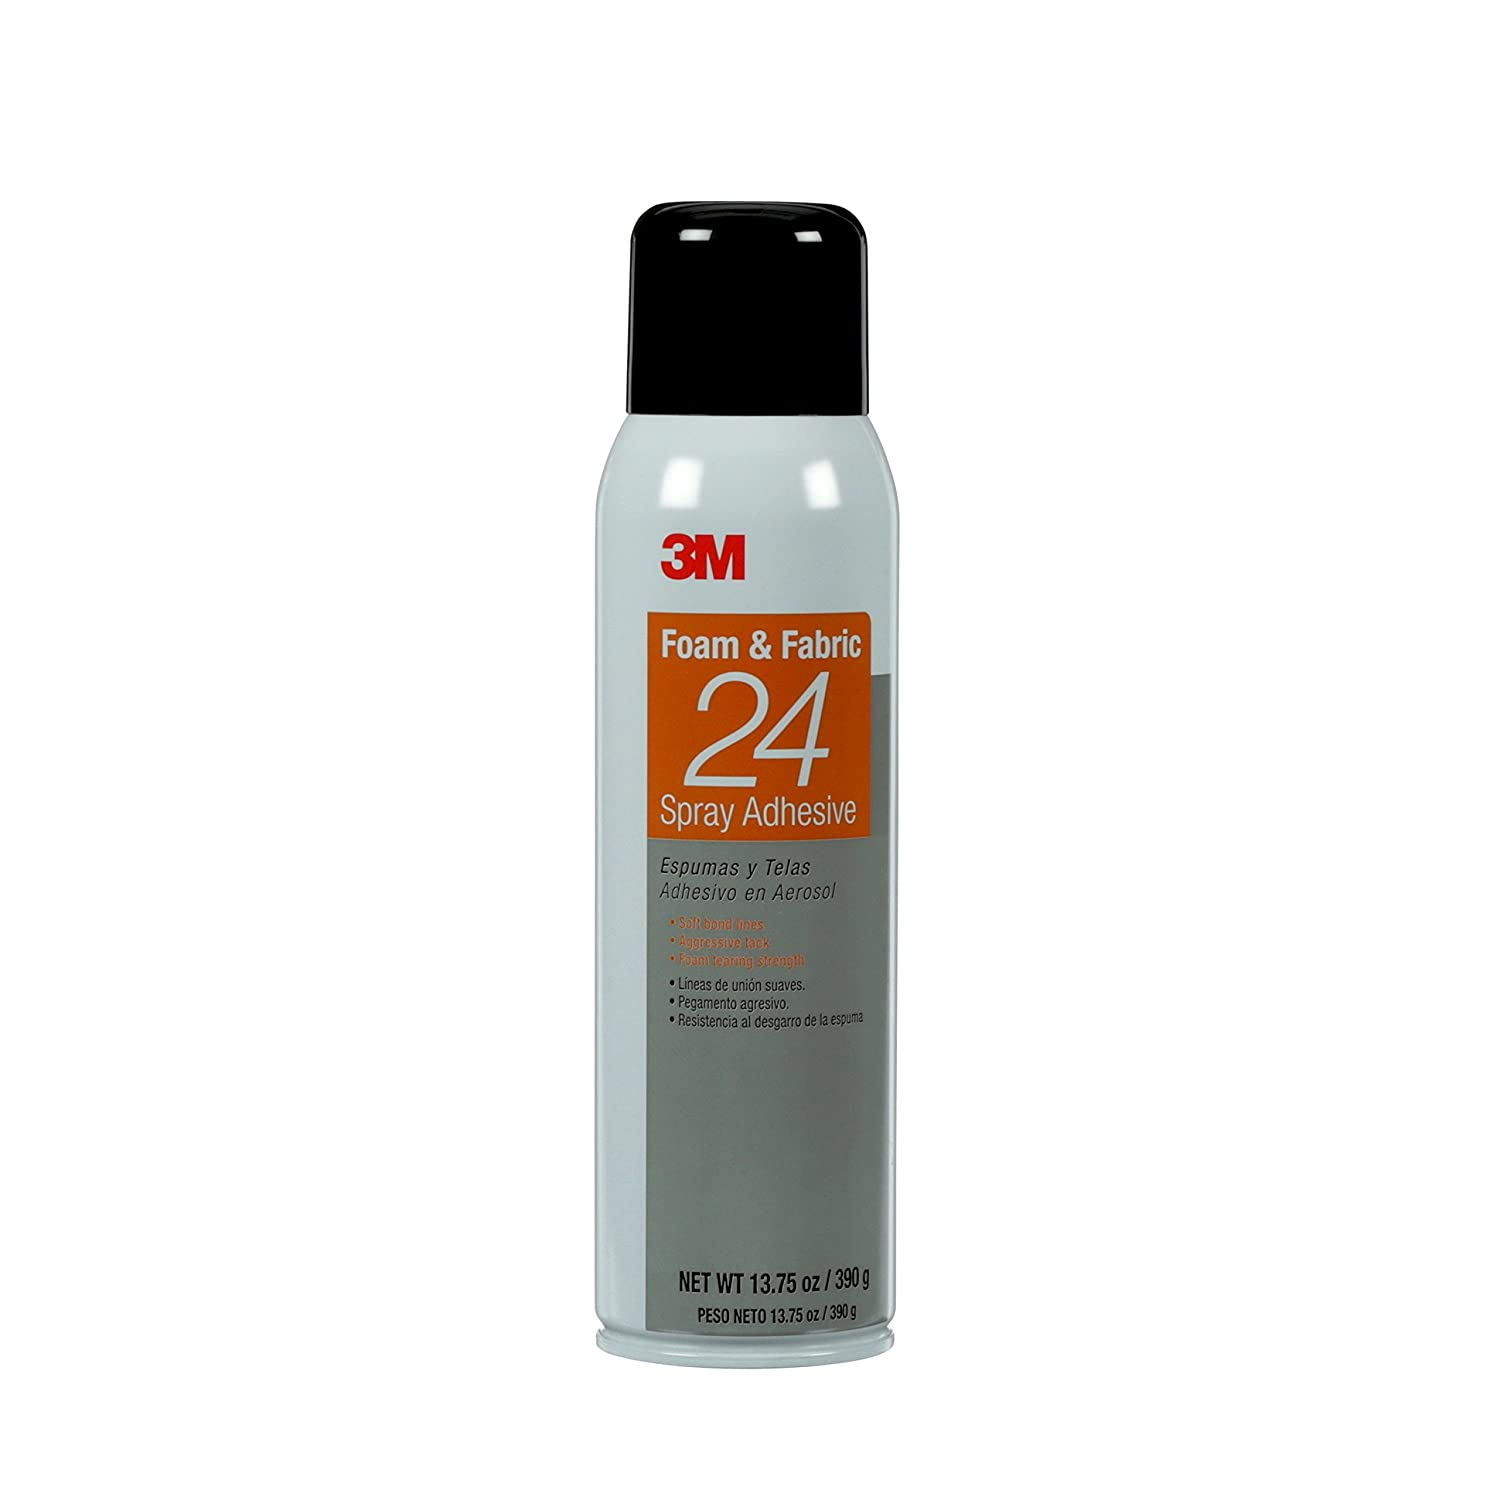 3M DAS-24SPRAY